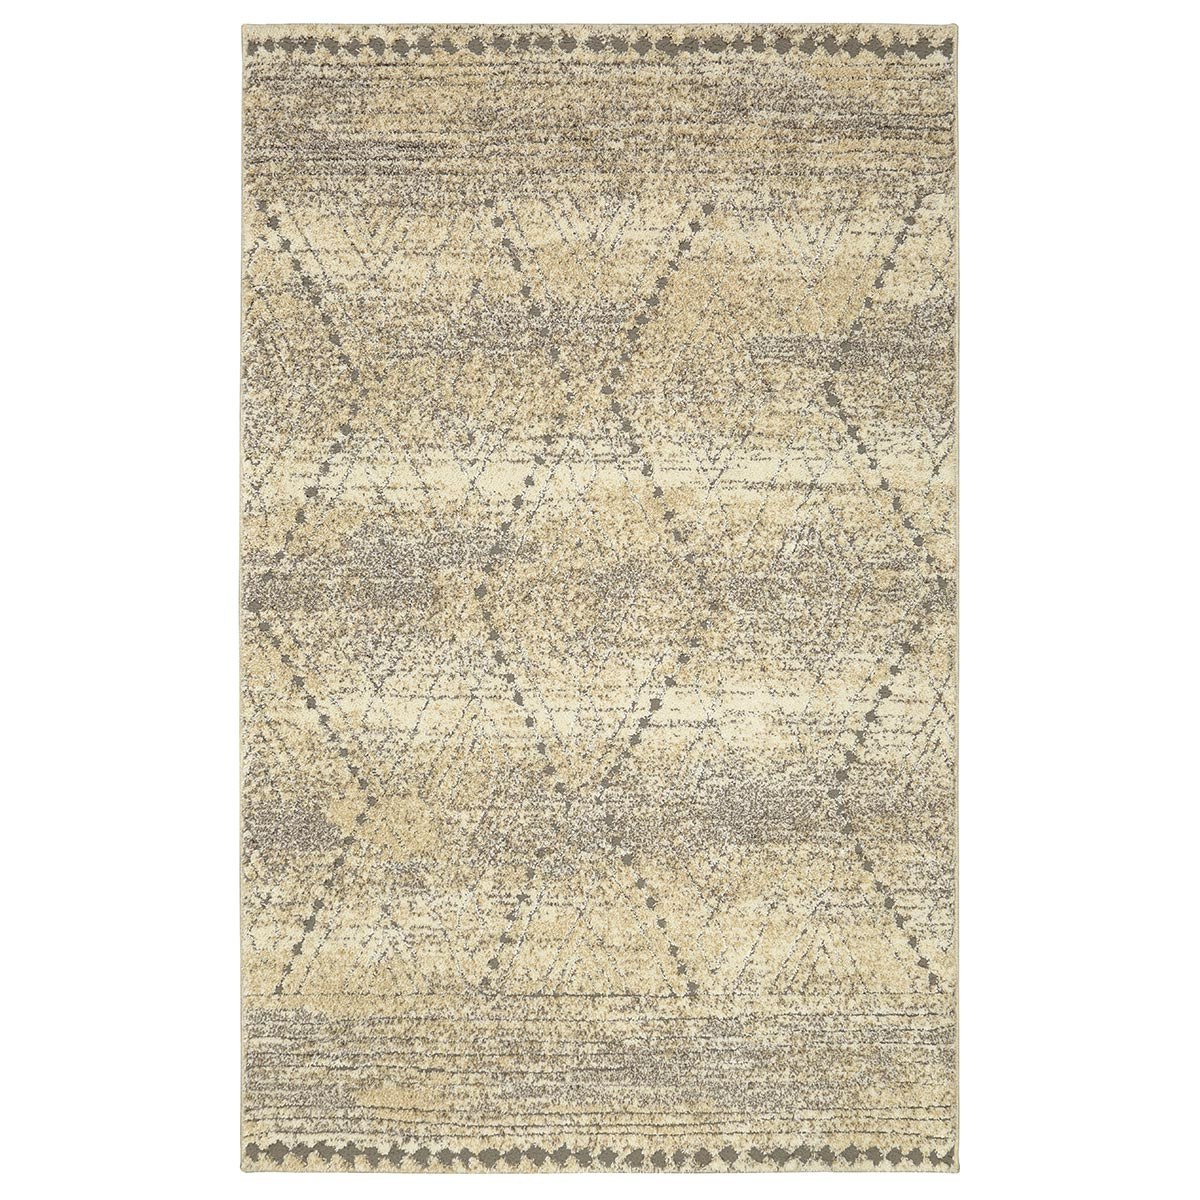 Tan Diamond Lines Rug - 8 x 10